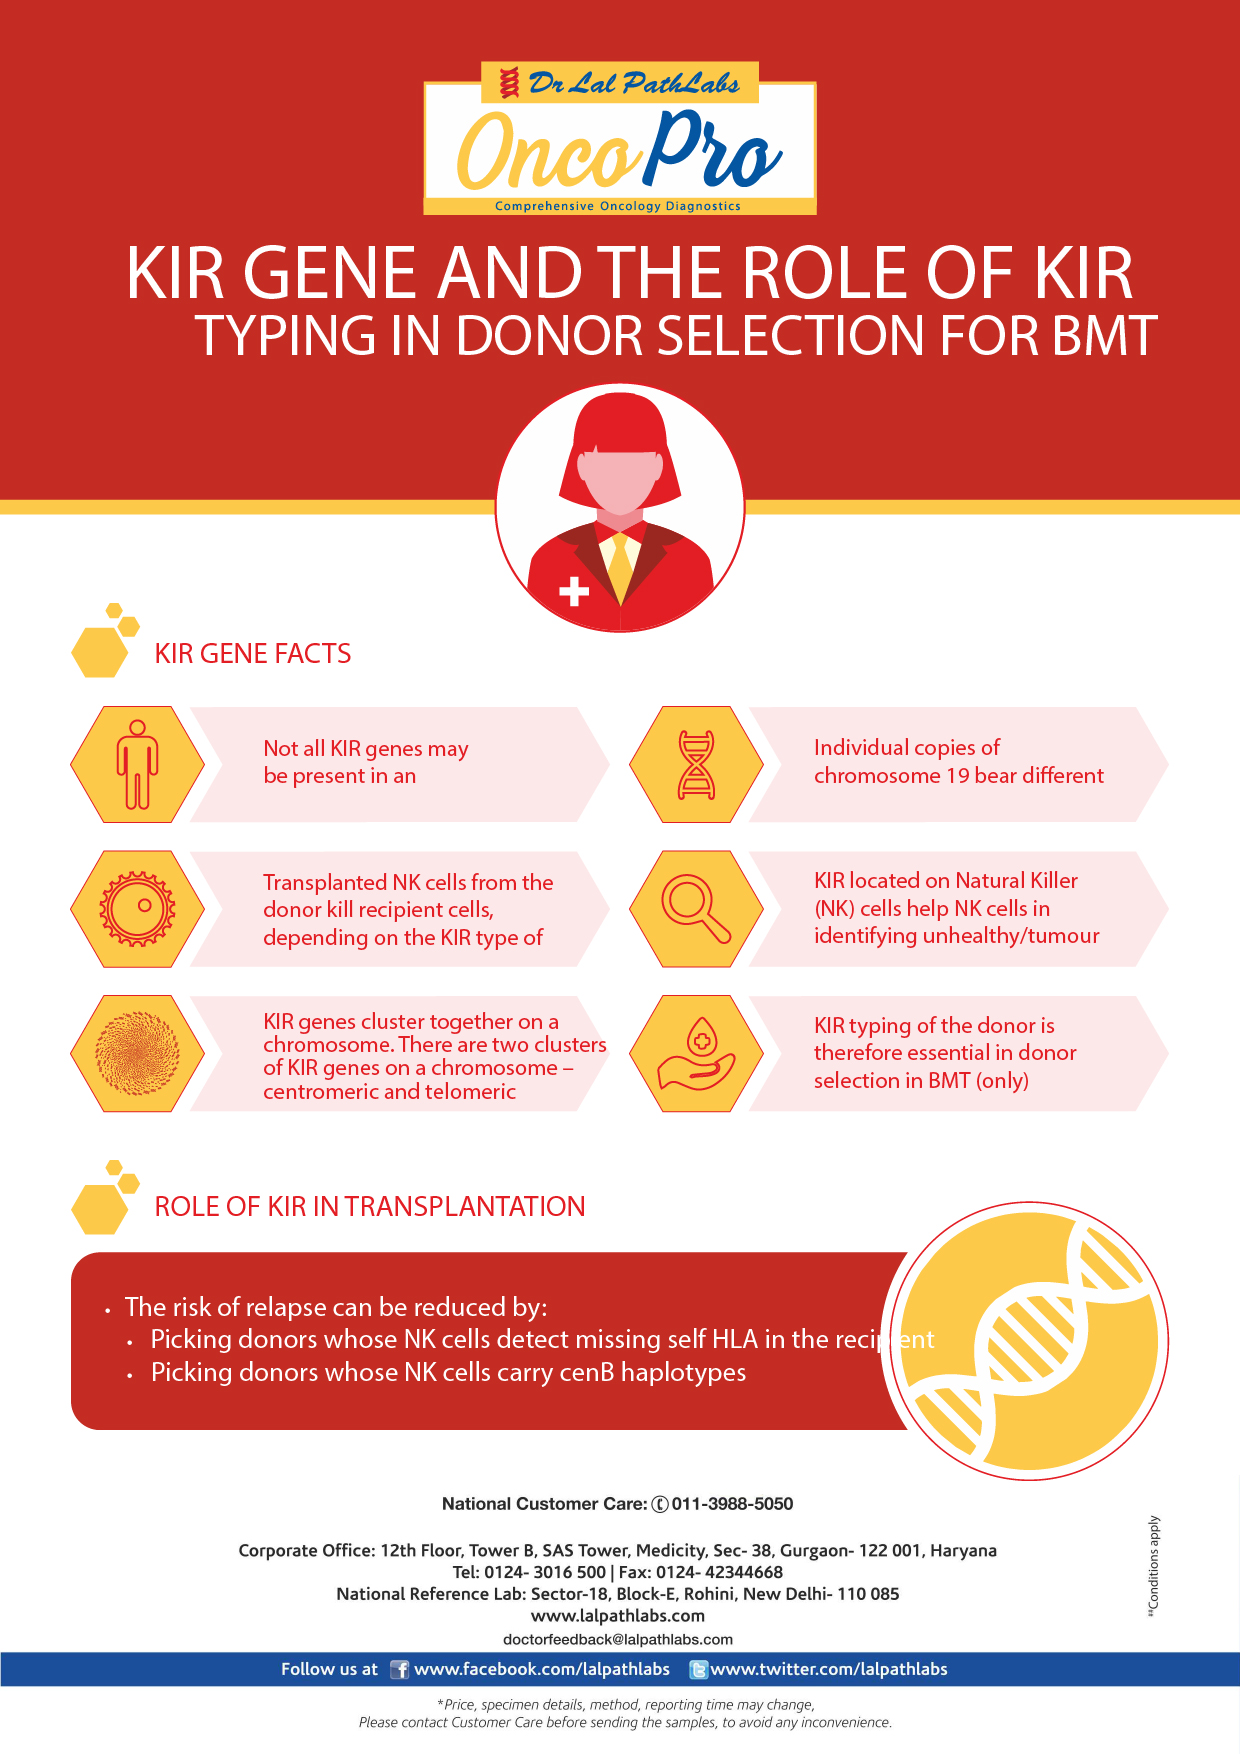 KIR Gene and the Role of KIR Typing in Donor Selection for BMT